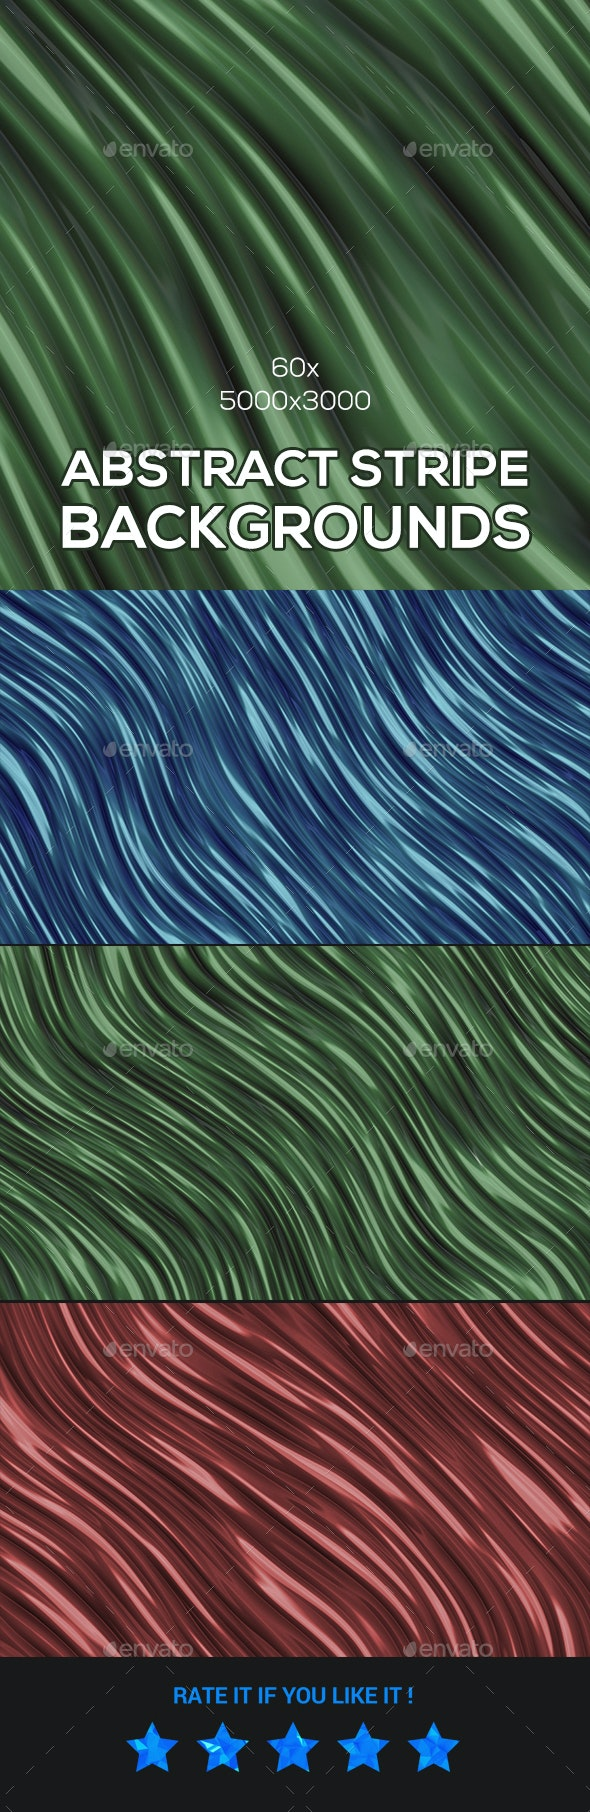 Abstract Stripe Backgrounds - Abstract Backgrounds